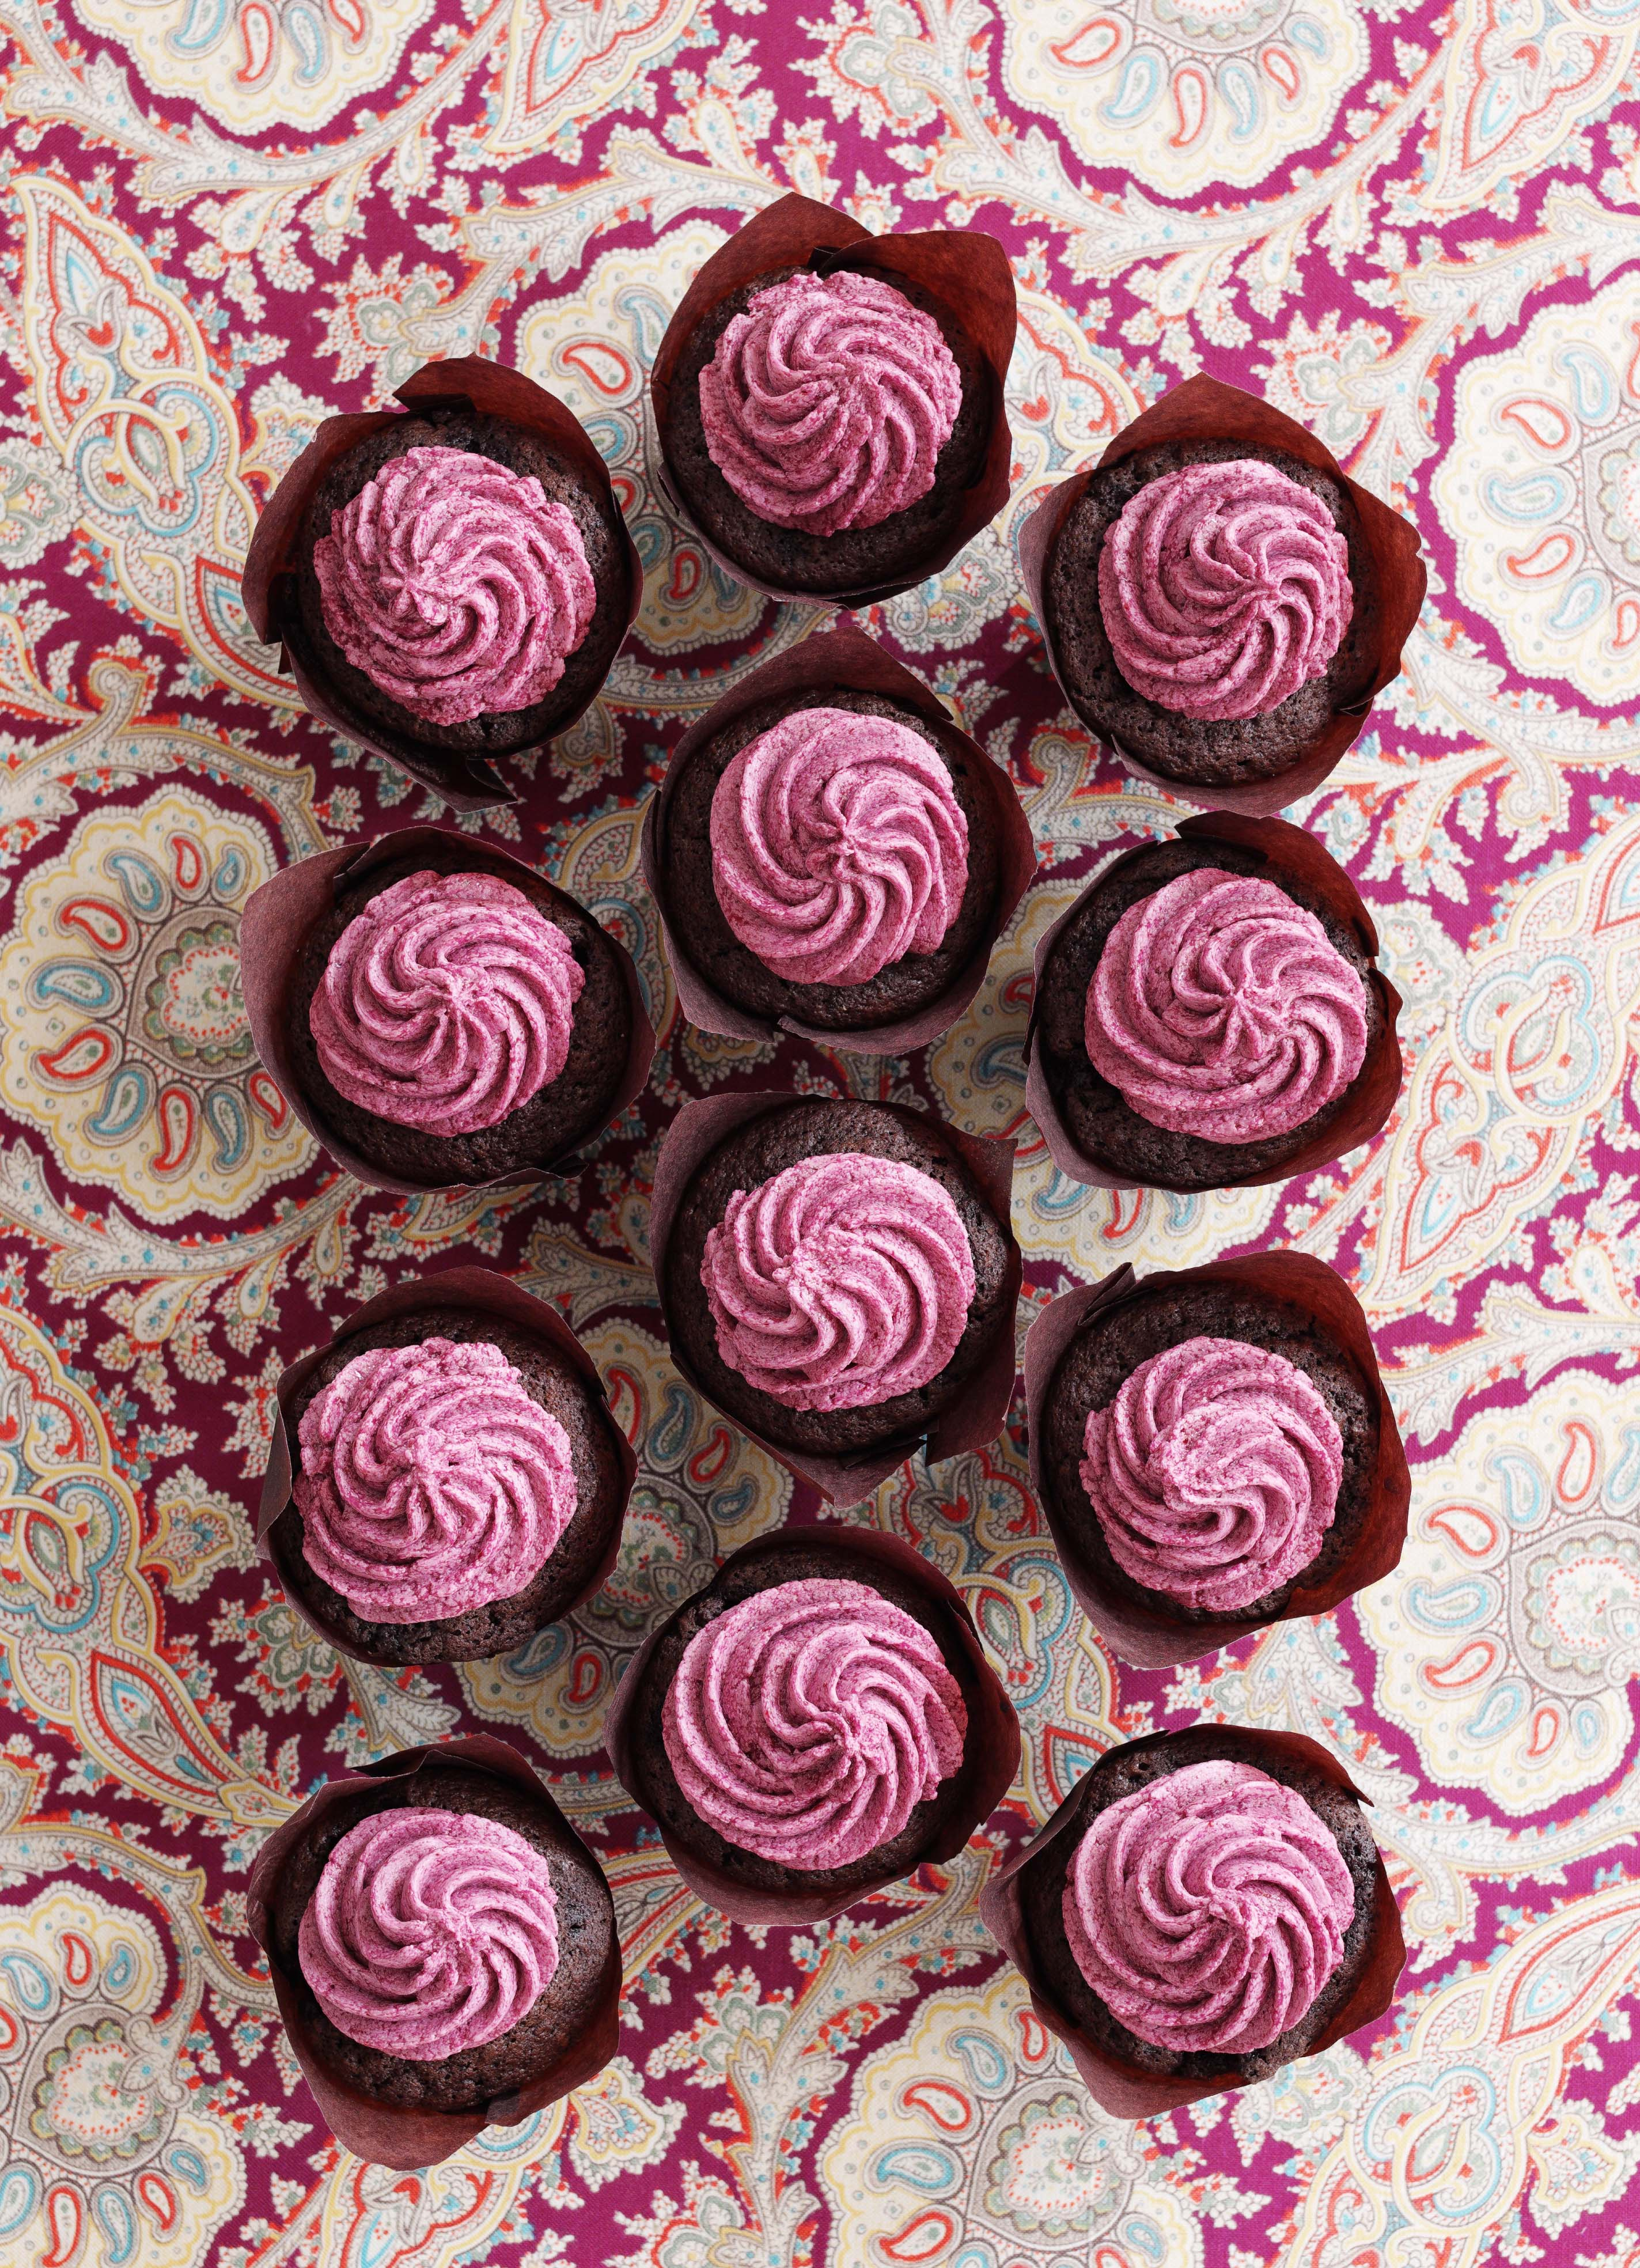 Blackberry Chocolate Cupcakes with Blackberry Buttercream